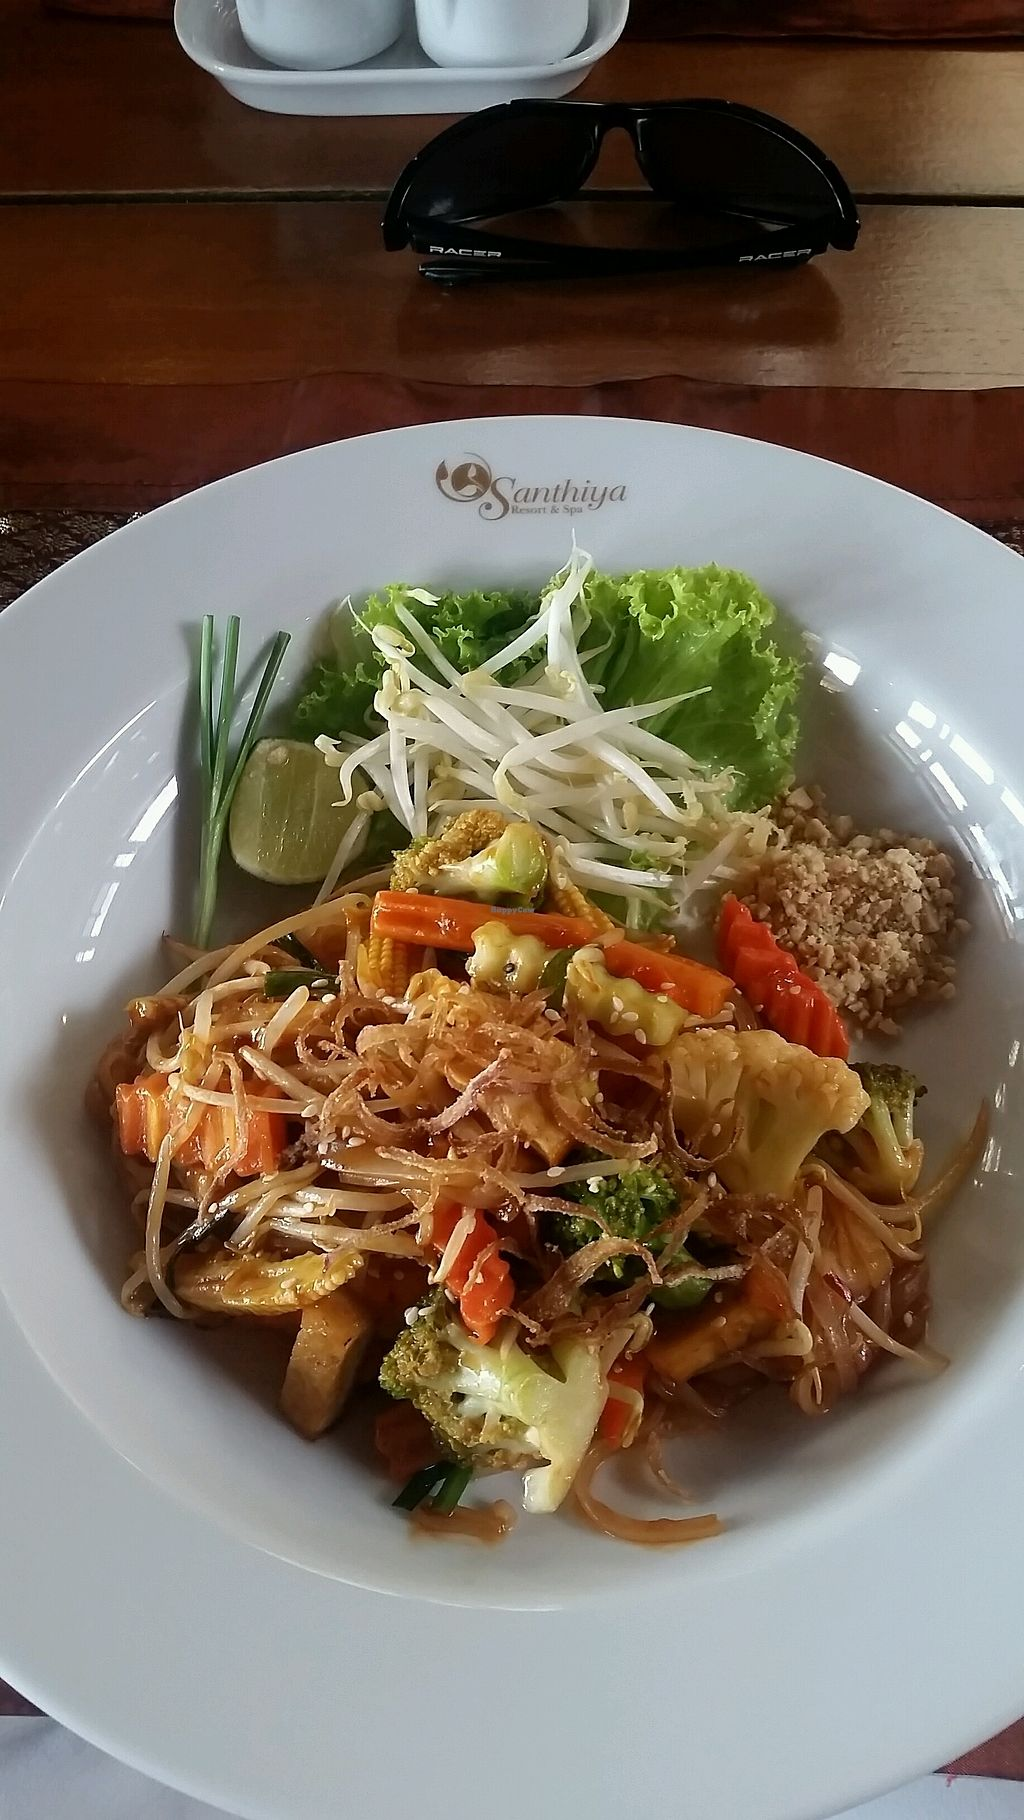 "Photo of Chantara Restaurant  by <a href=""/members/profile/admit"">admit</a> <br/>Vegan Pad Thai <br/> February 28, 2018  - <a href='/contact/abuse/image/113005/364805'>Report</a>"